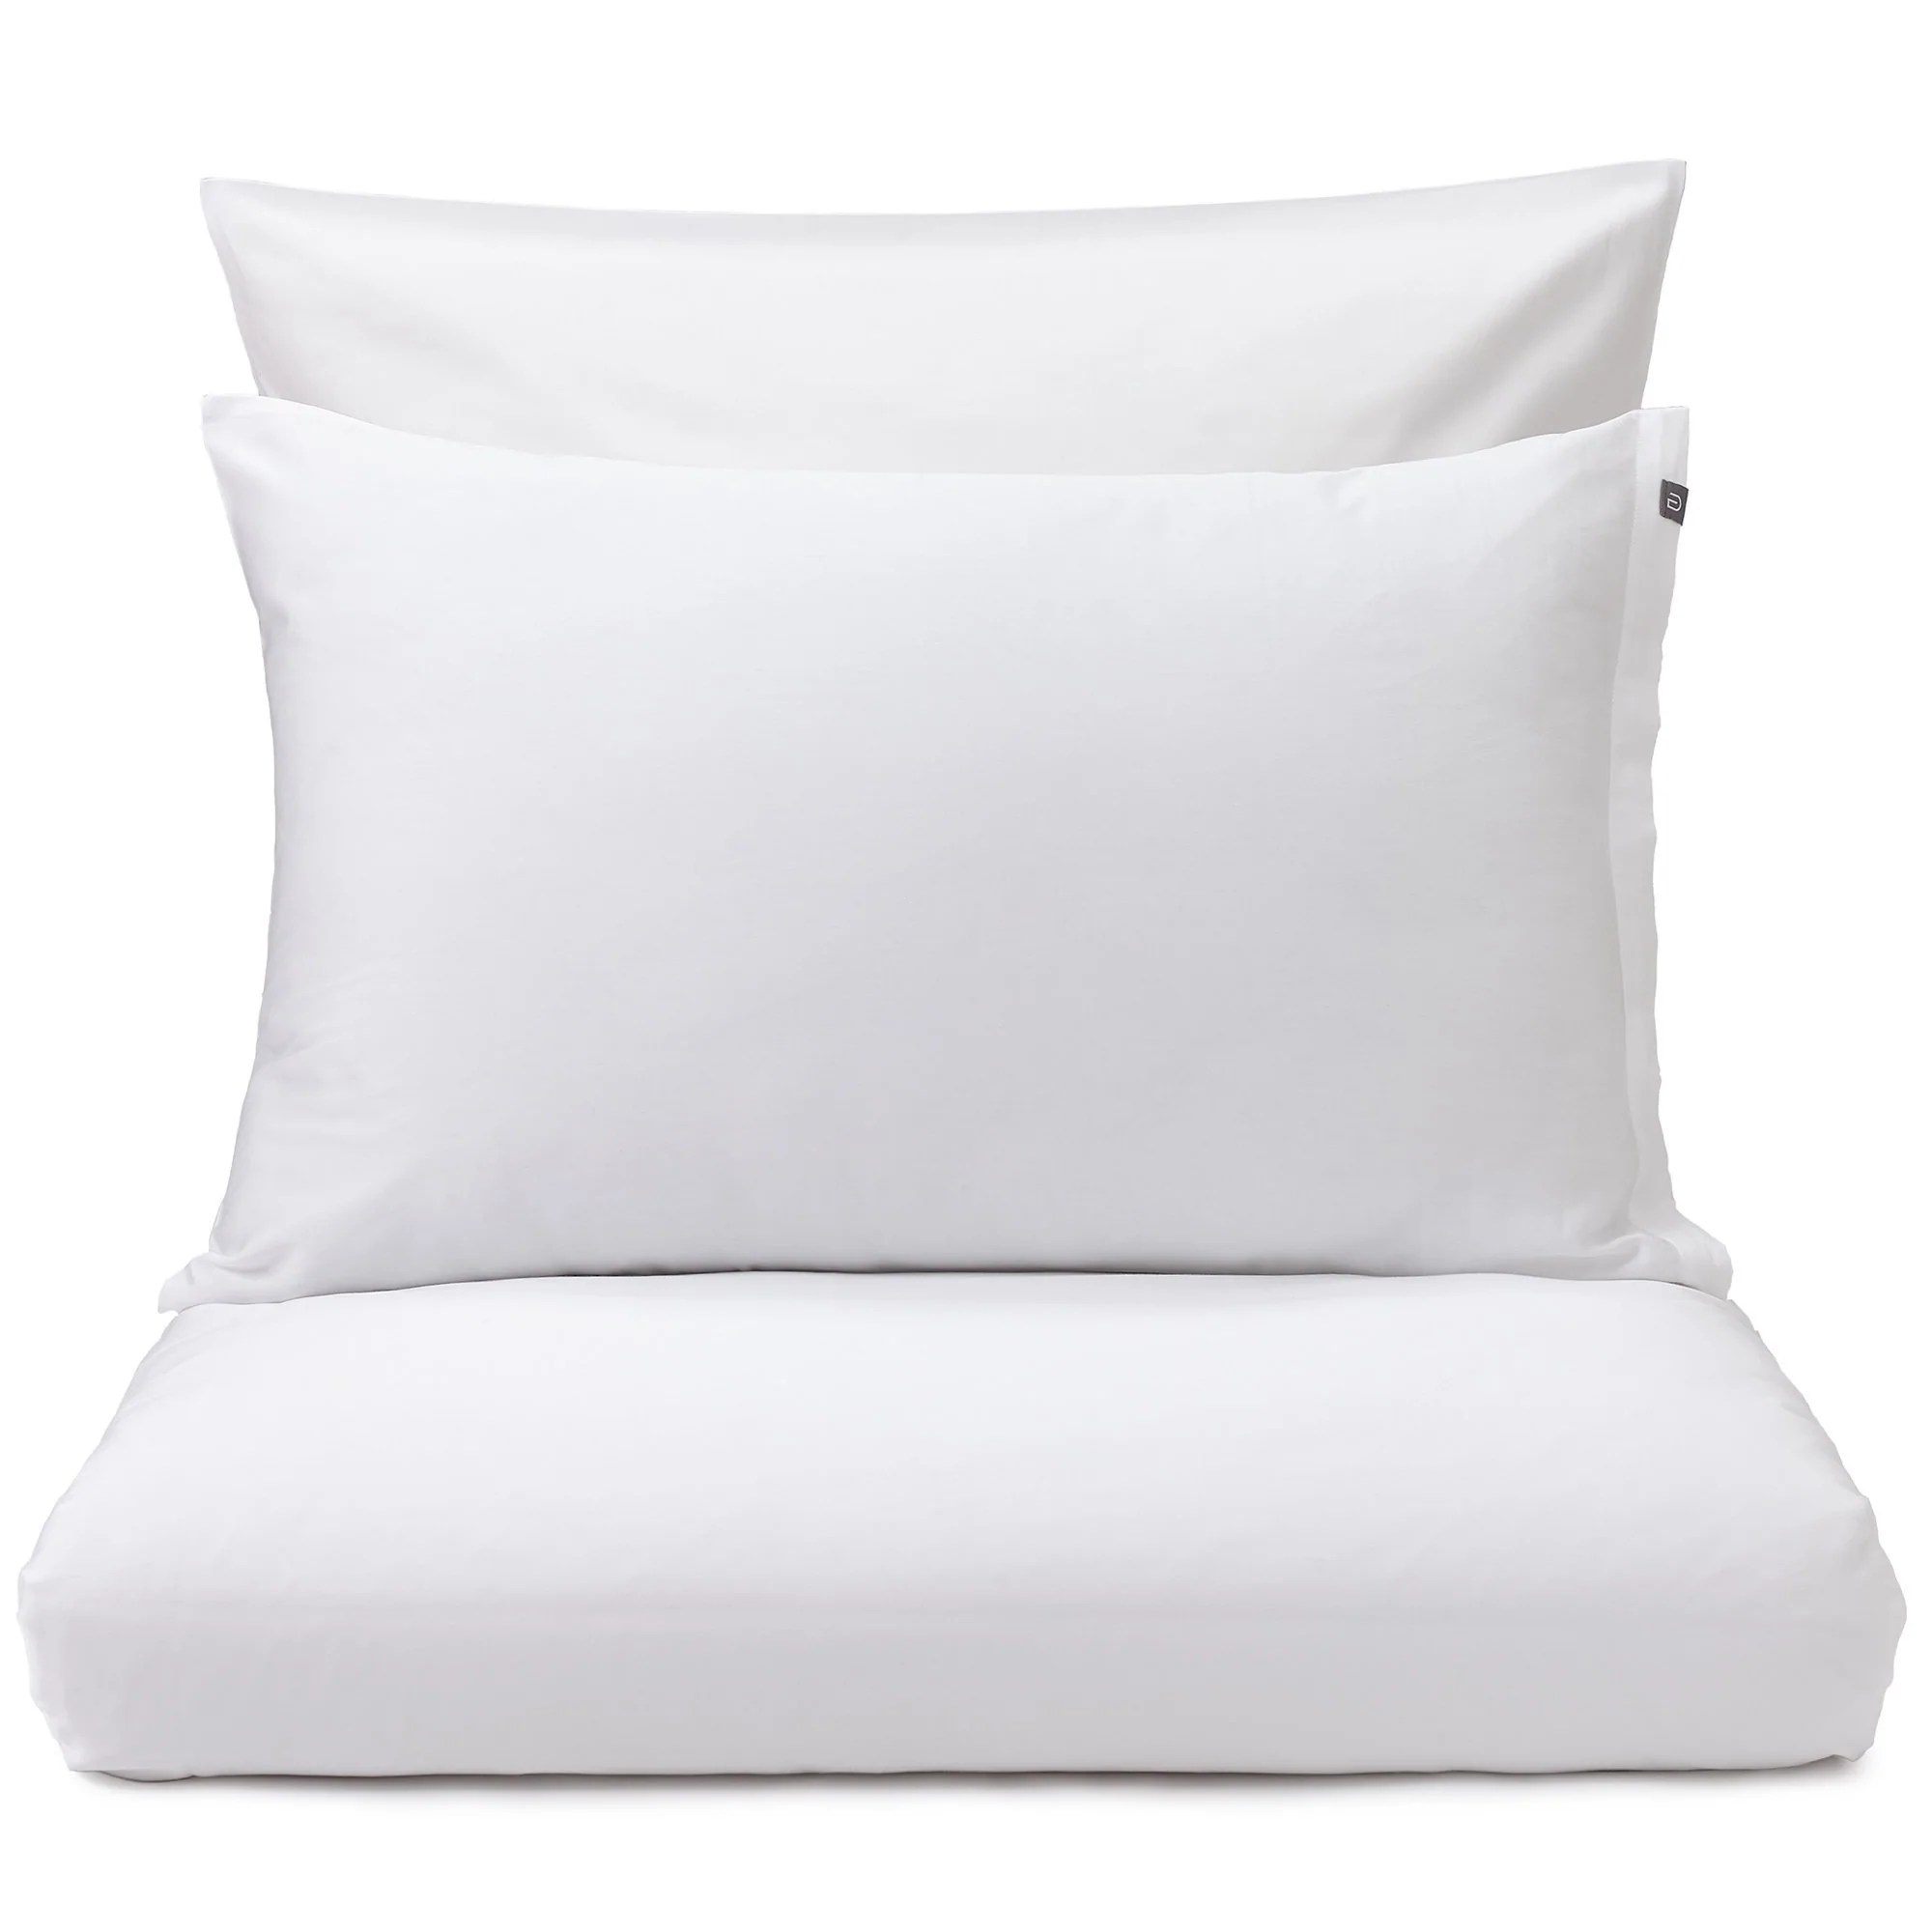 Bettdecken 24 Oufeiro Bed Linen White Urbanara